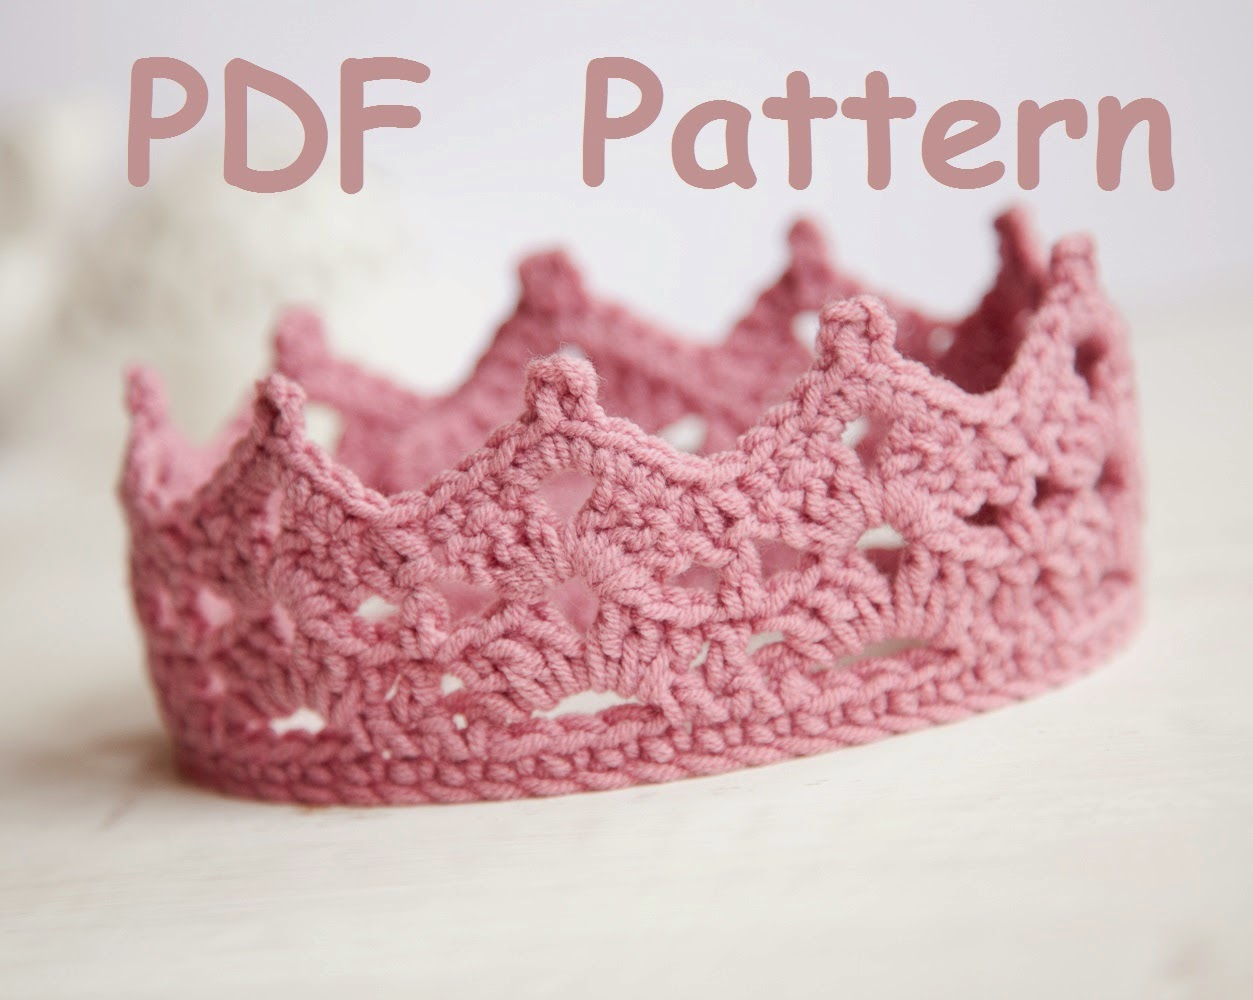 Crochet Baby Crown Headband Pattern : Lana creations My knitting work, knit project and free ...